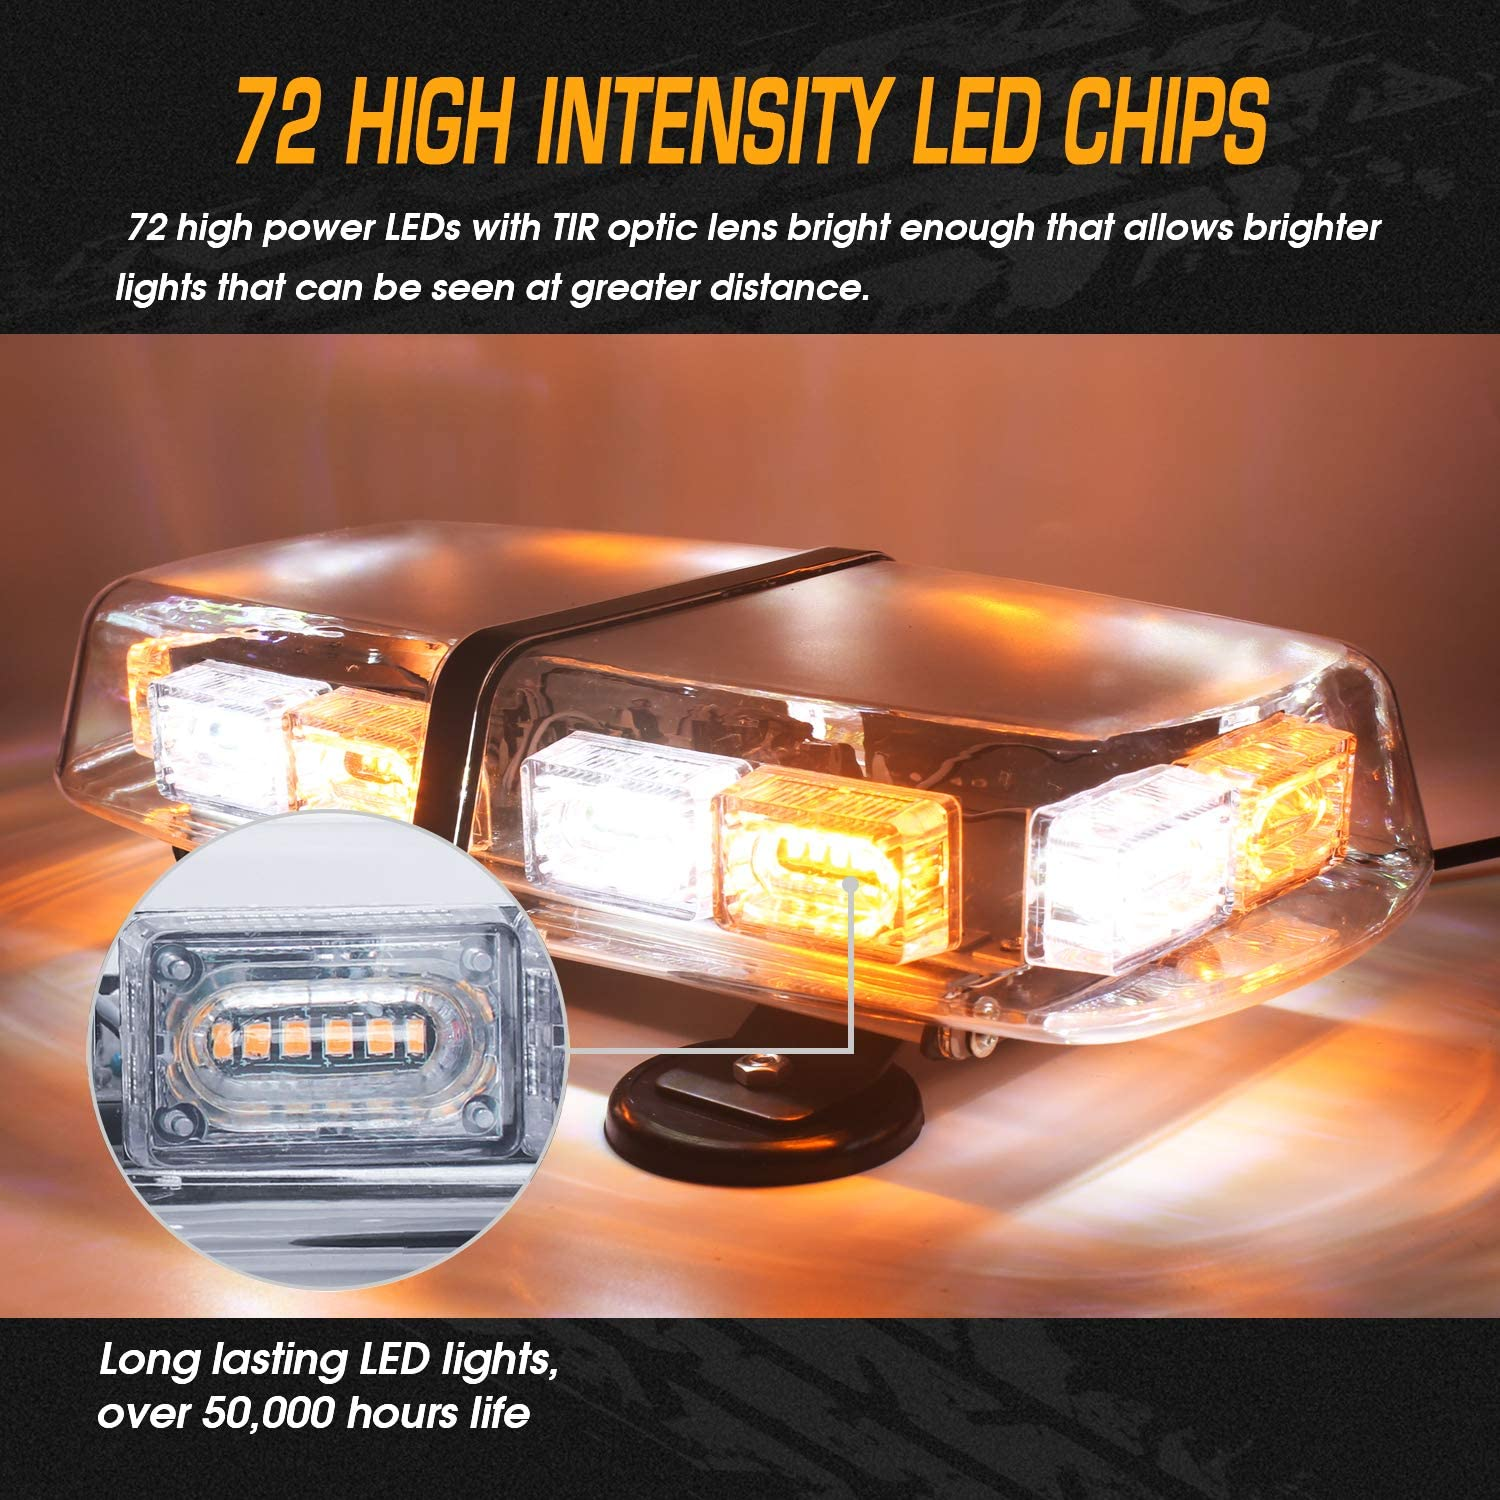 Amber Linkitom LED Strobe Flashing Light 72 LED High Intensity Emergency Hazard Warning Lighting with 4 Heavy Duty Strong Magnets and 16 ft Straight Cord for Truck Vehicle Roof Safety